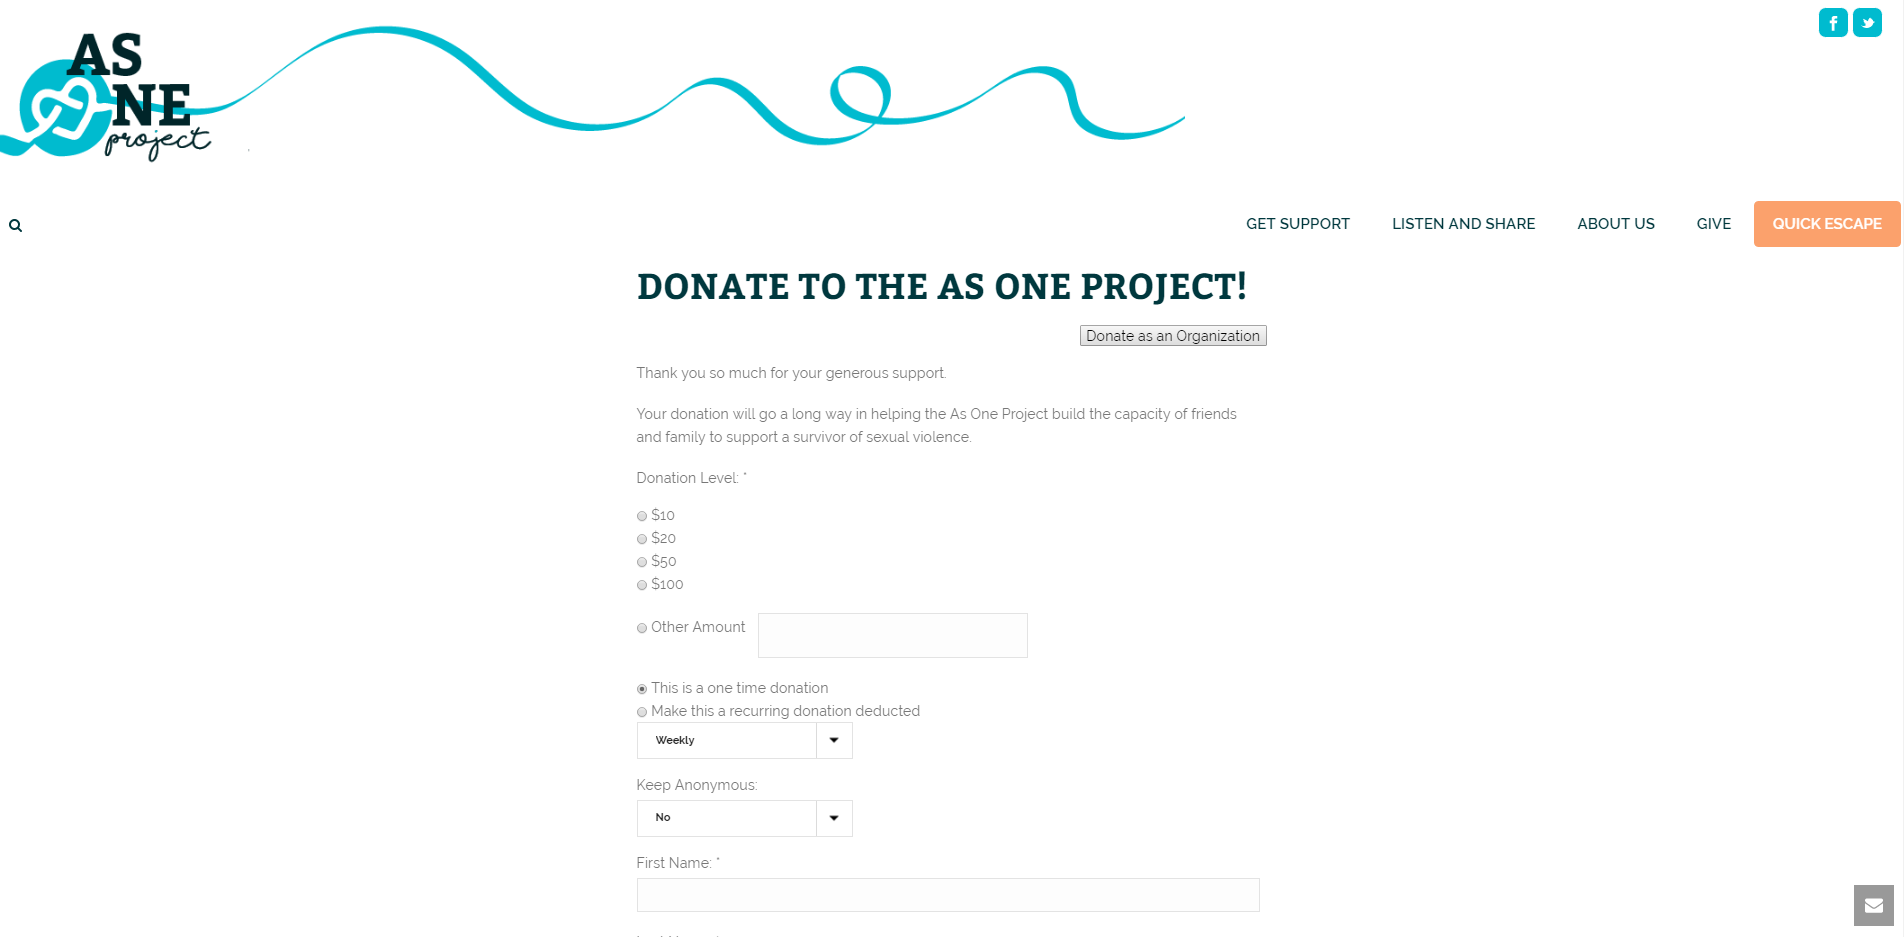 Neon Nonprofit Web Studio | As One Project | Donate